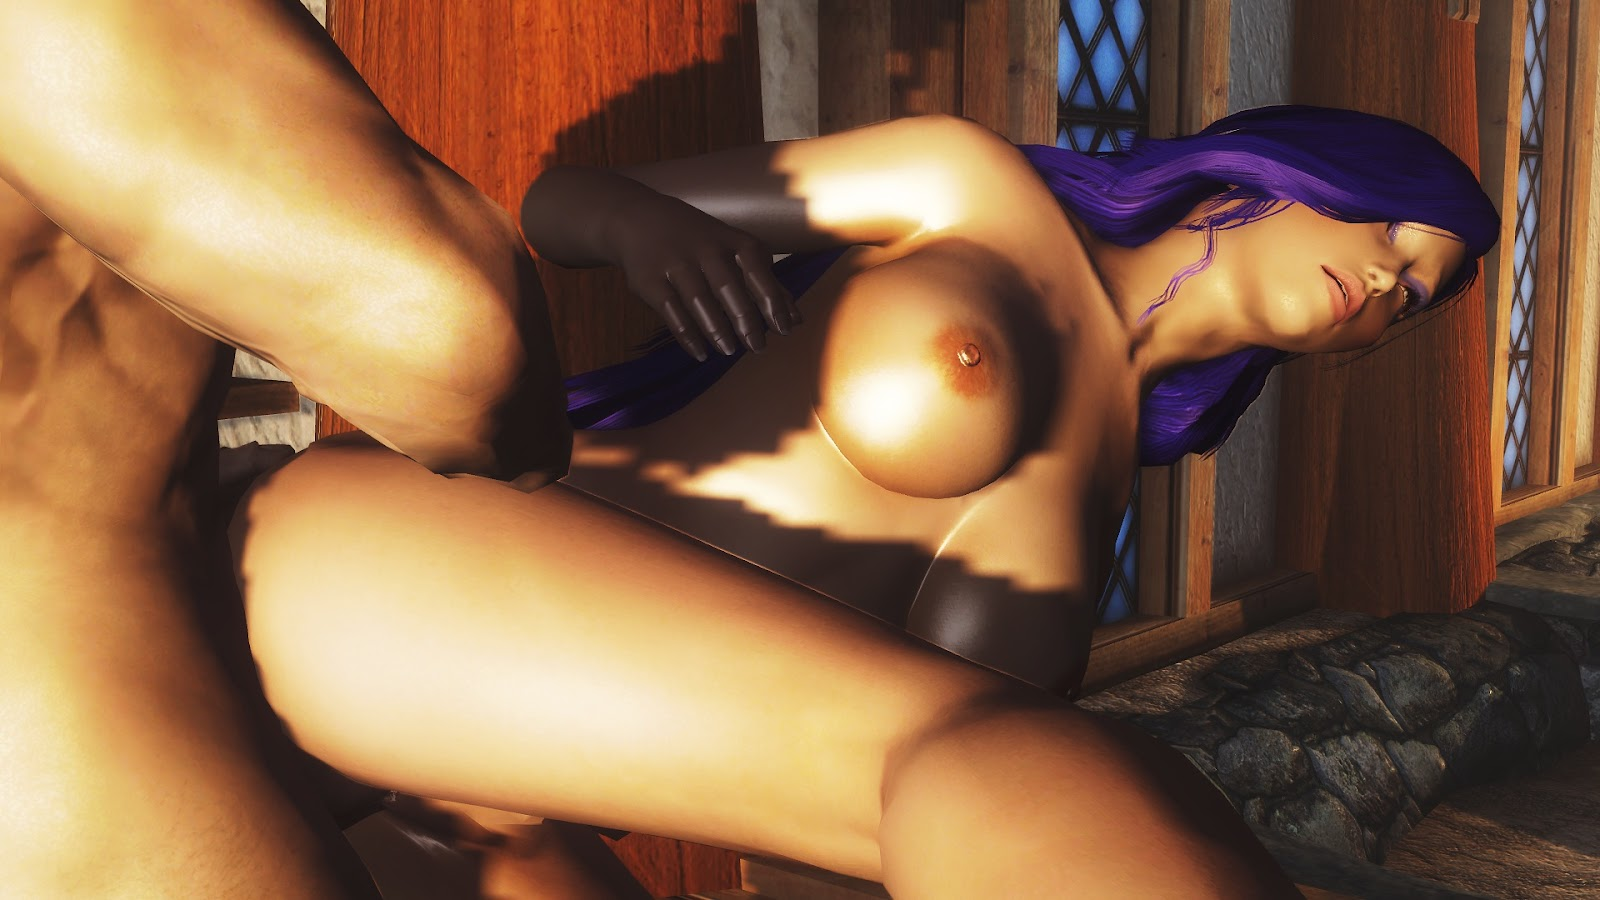 Animated3dsex blogspot sex scenes